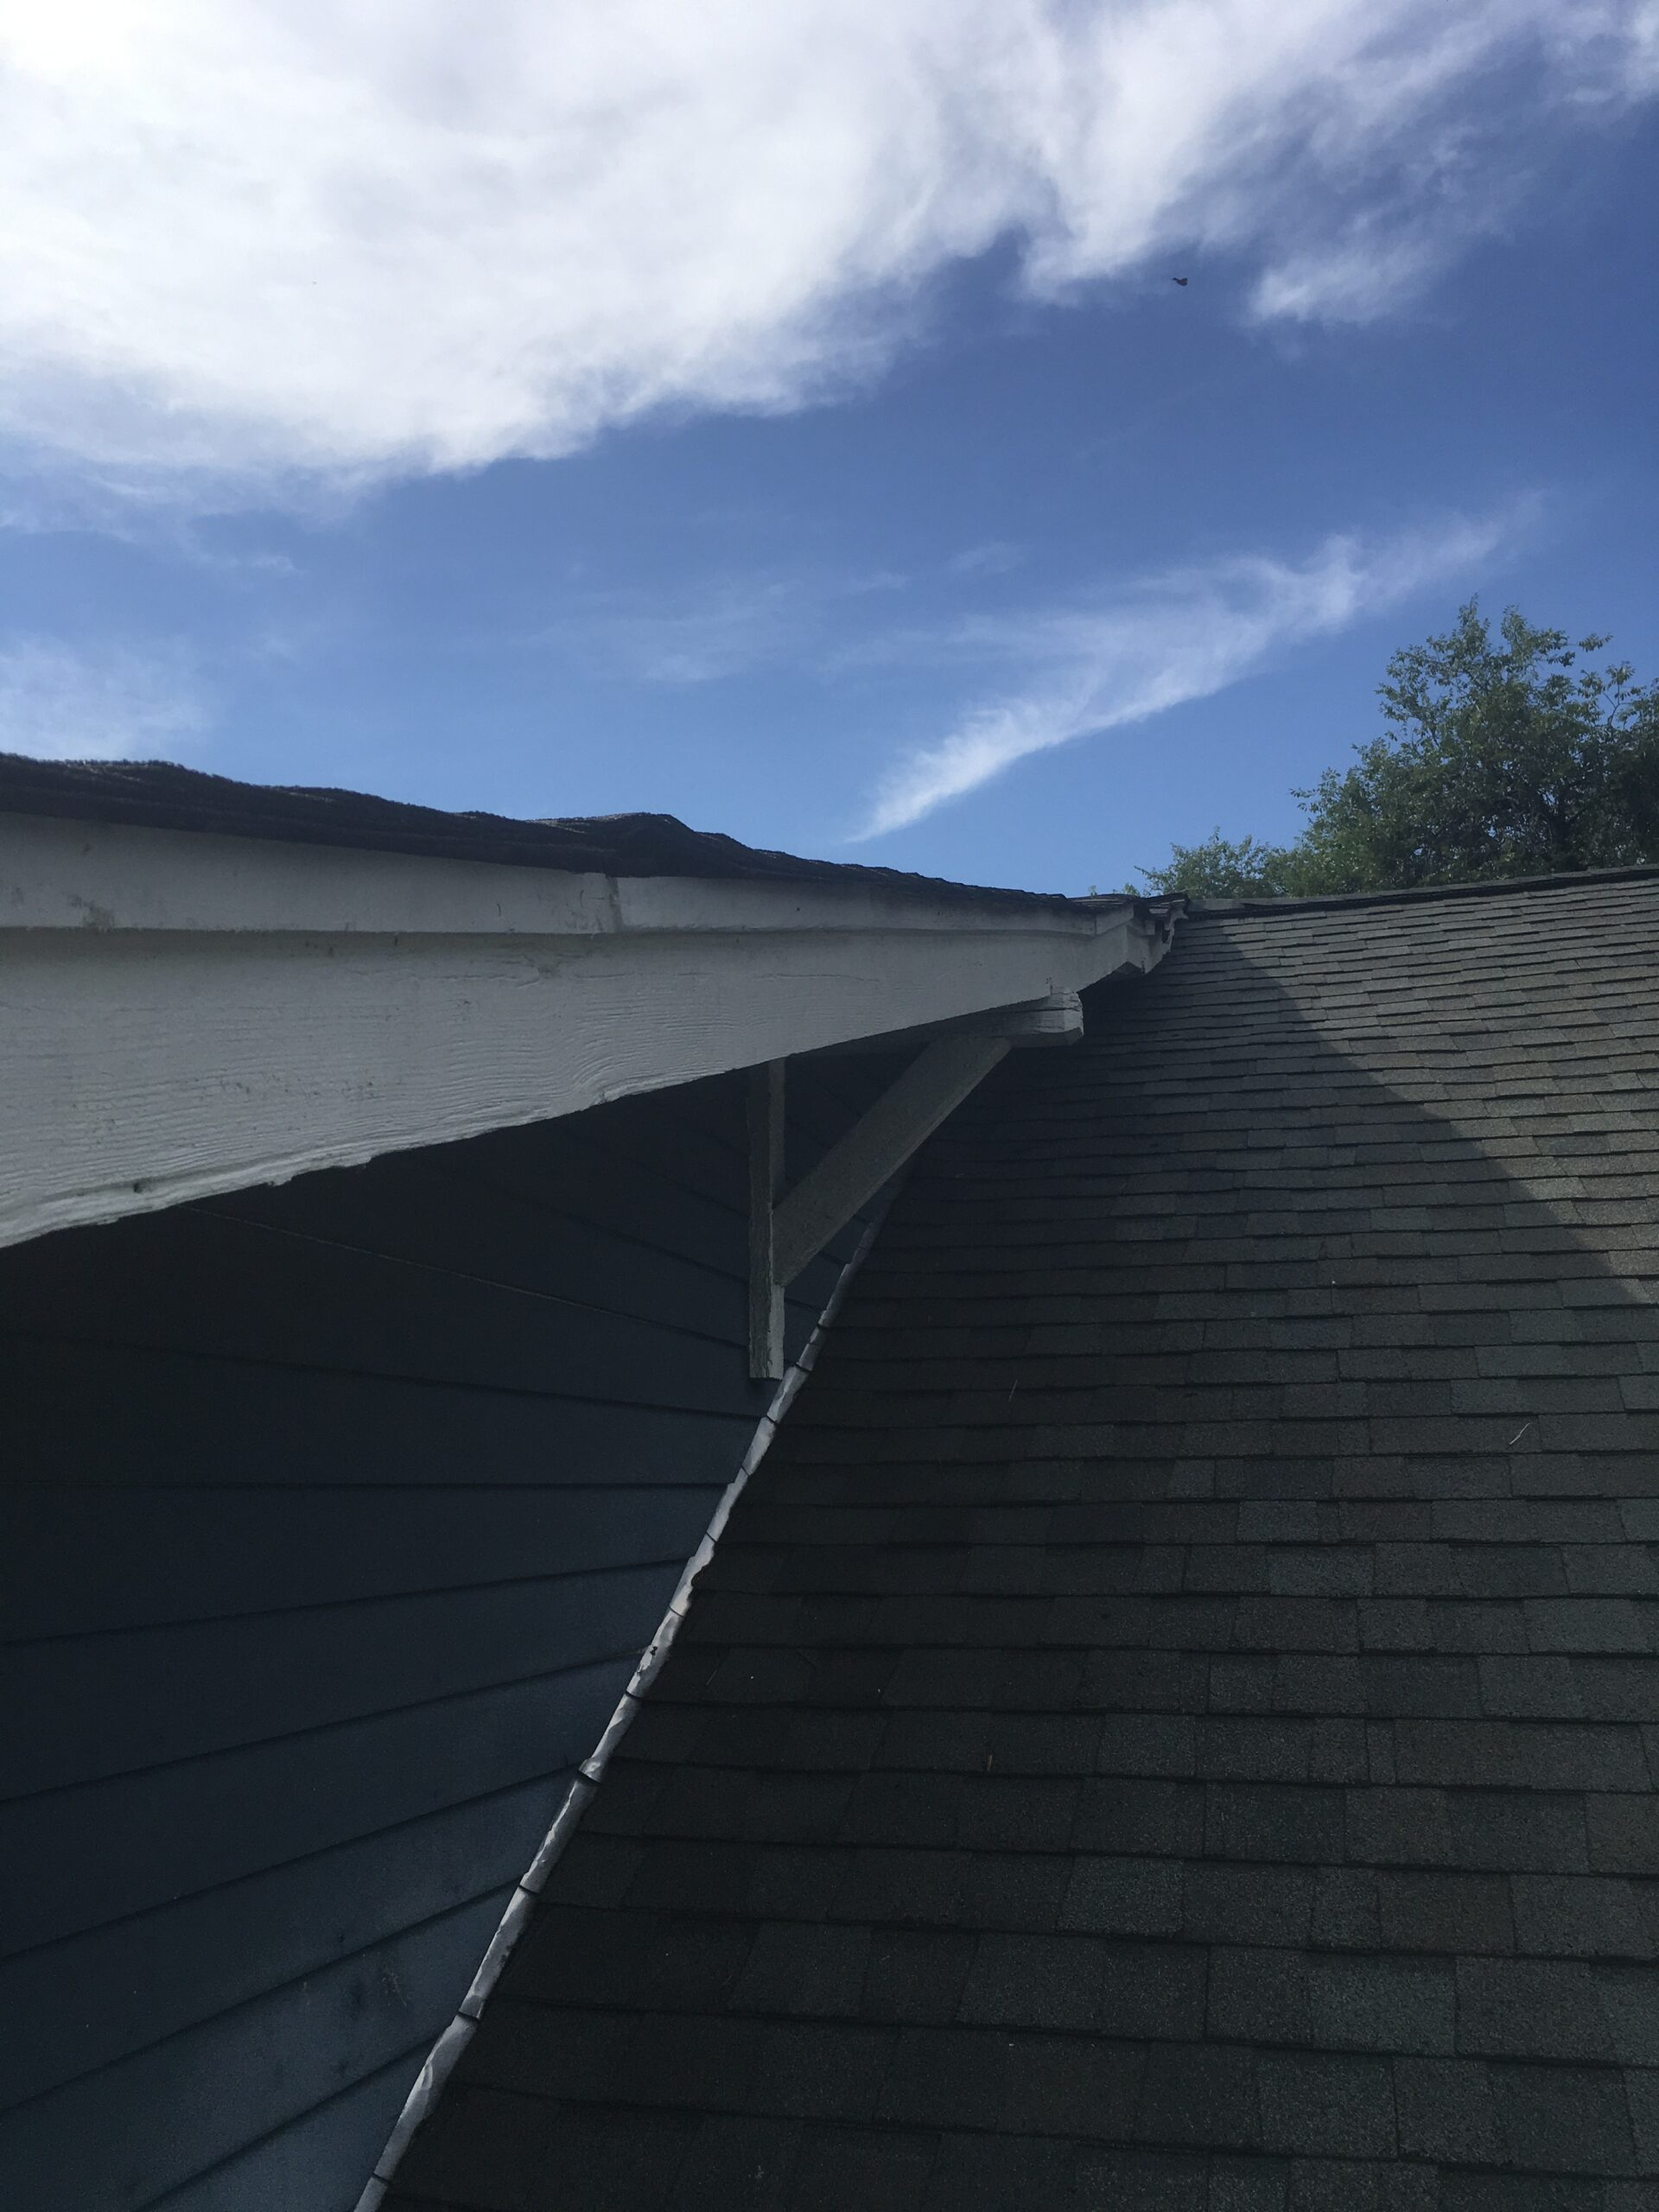 this is a picture of a soffit that is wavy showing a wavy roofline